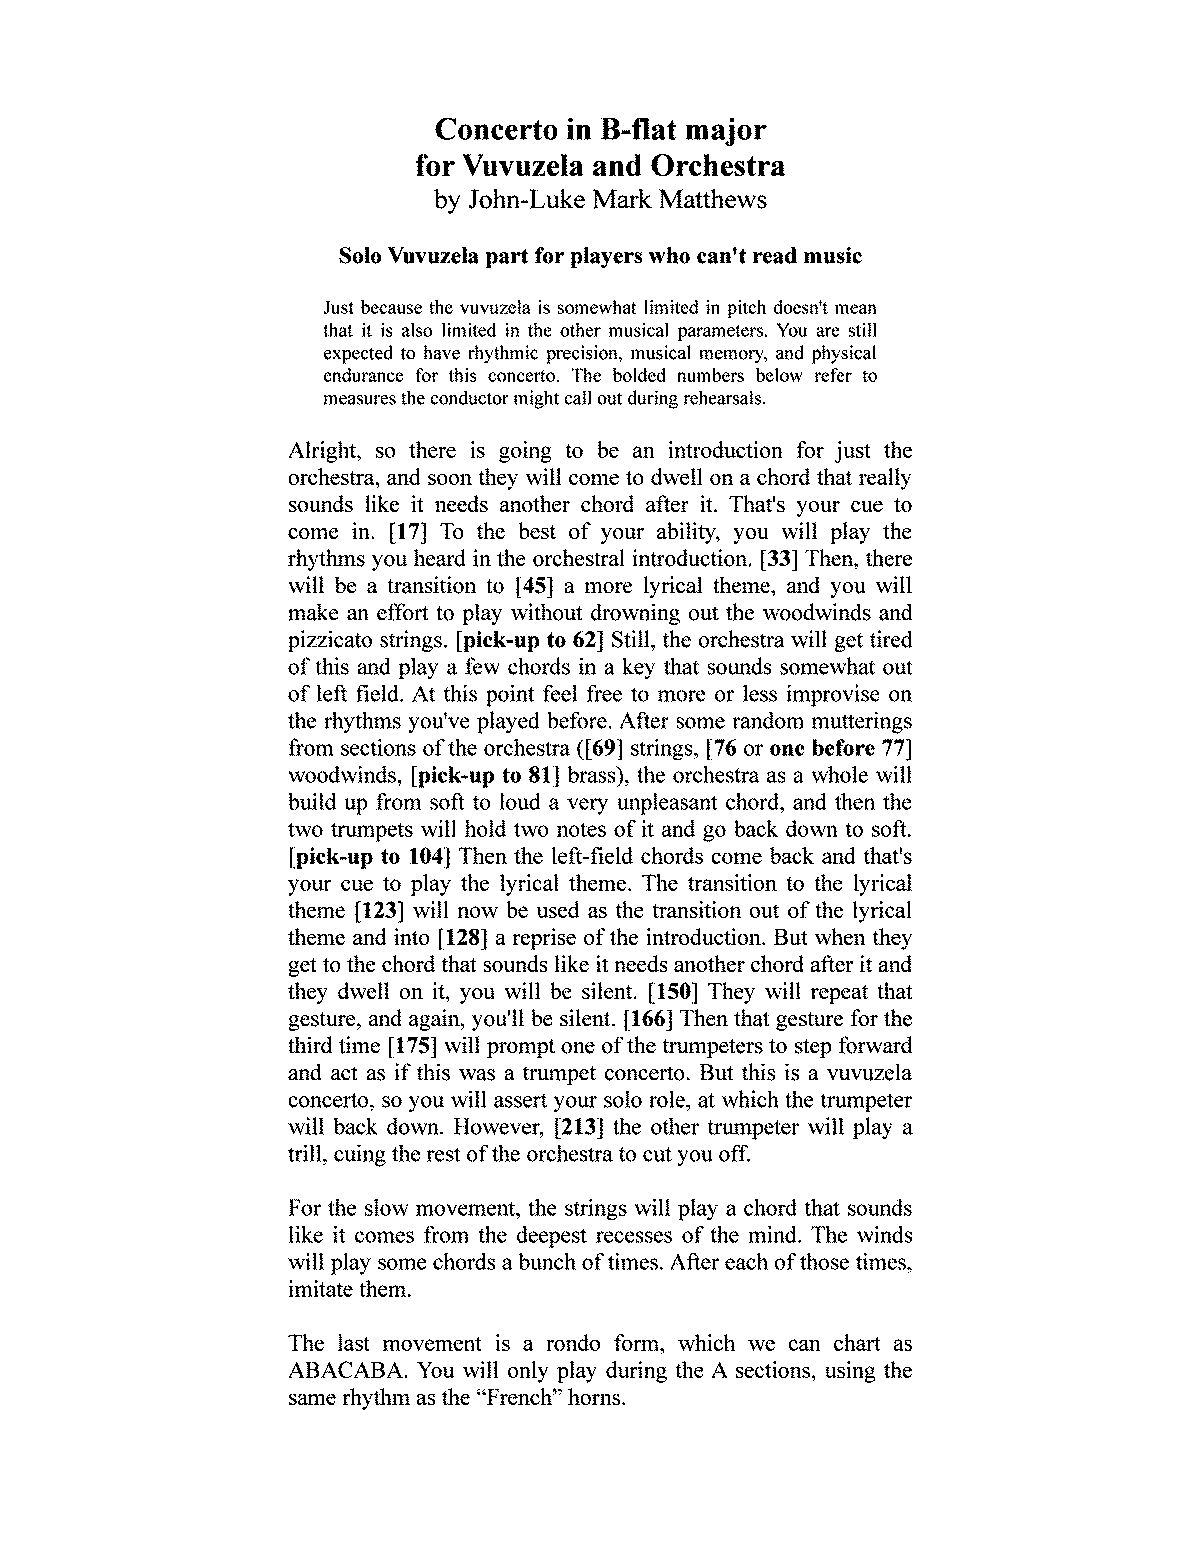 PMLP178010-Solo Vuvuzela part for those who cant read music.pdf